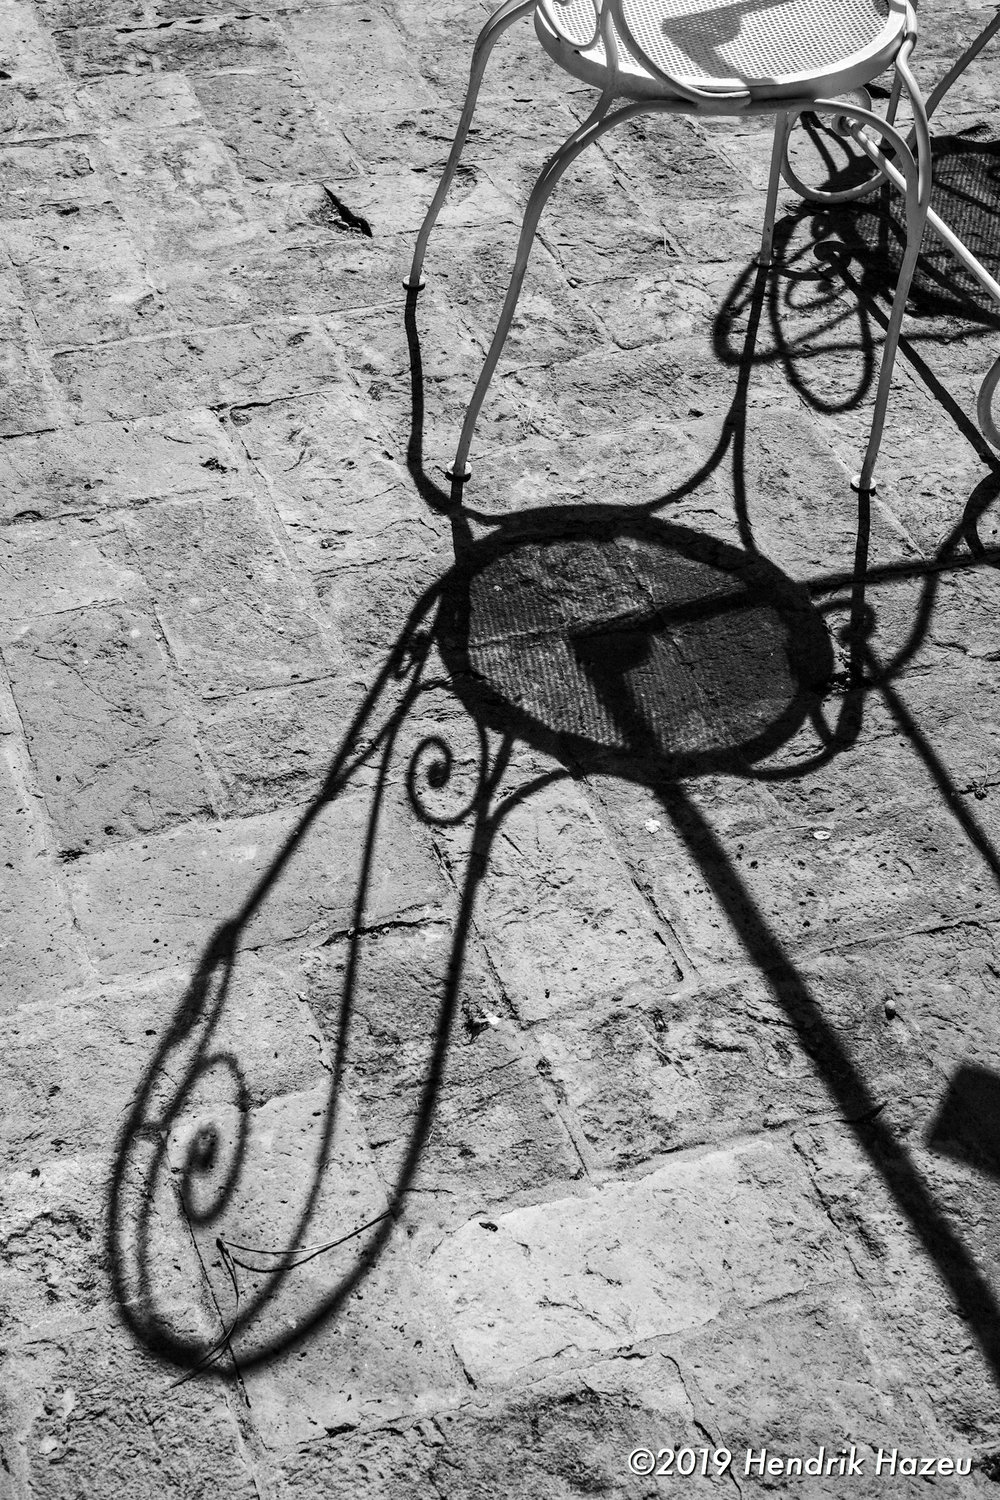 Stylish shadow details on our terrace at Cà Palazzo Malvasia: Seen with Fuji X-H1 & XF 35 mm f/1.4 @f/8